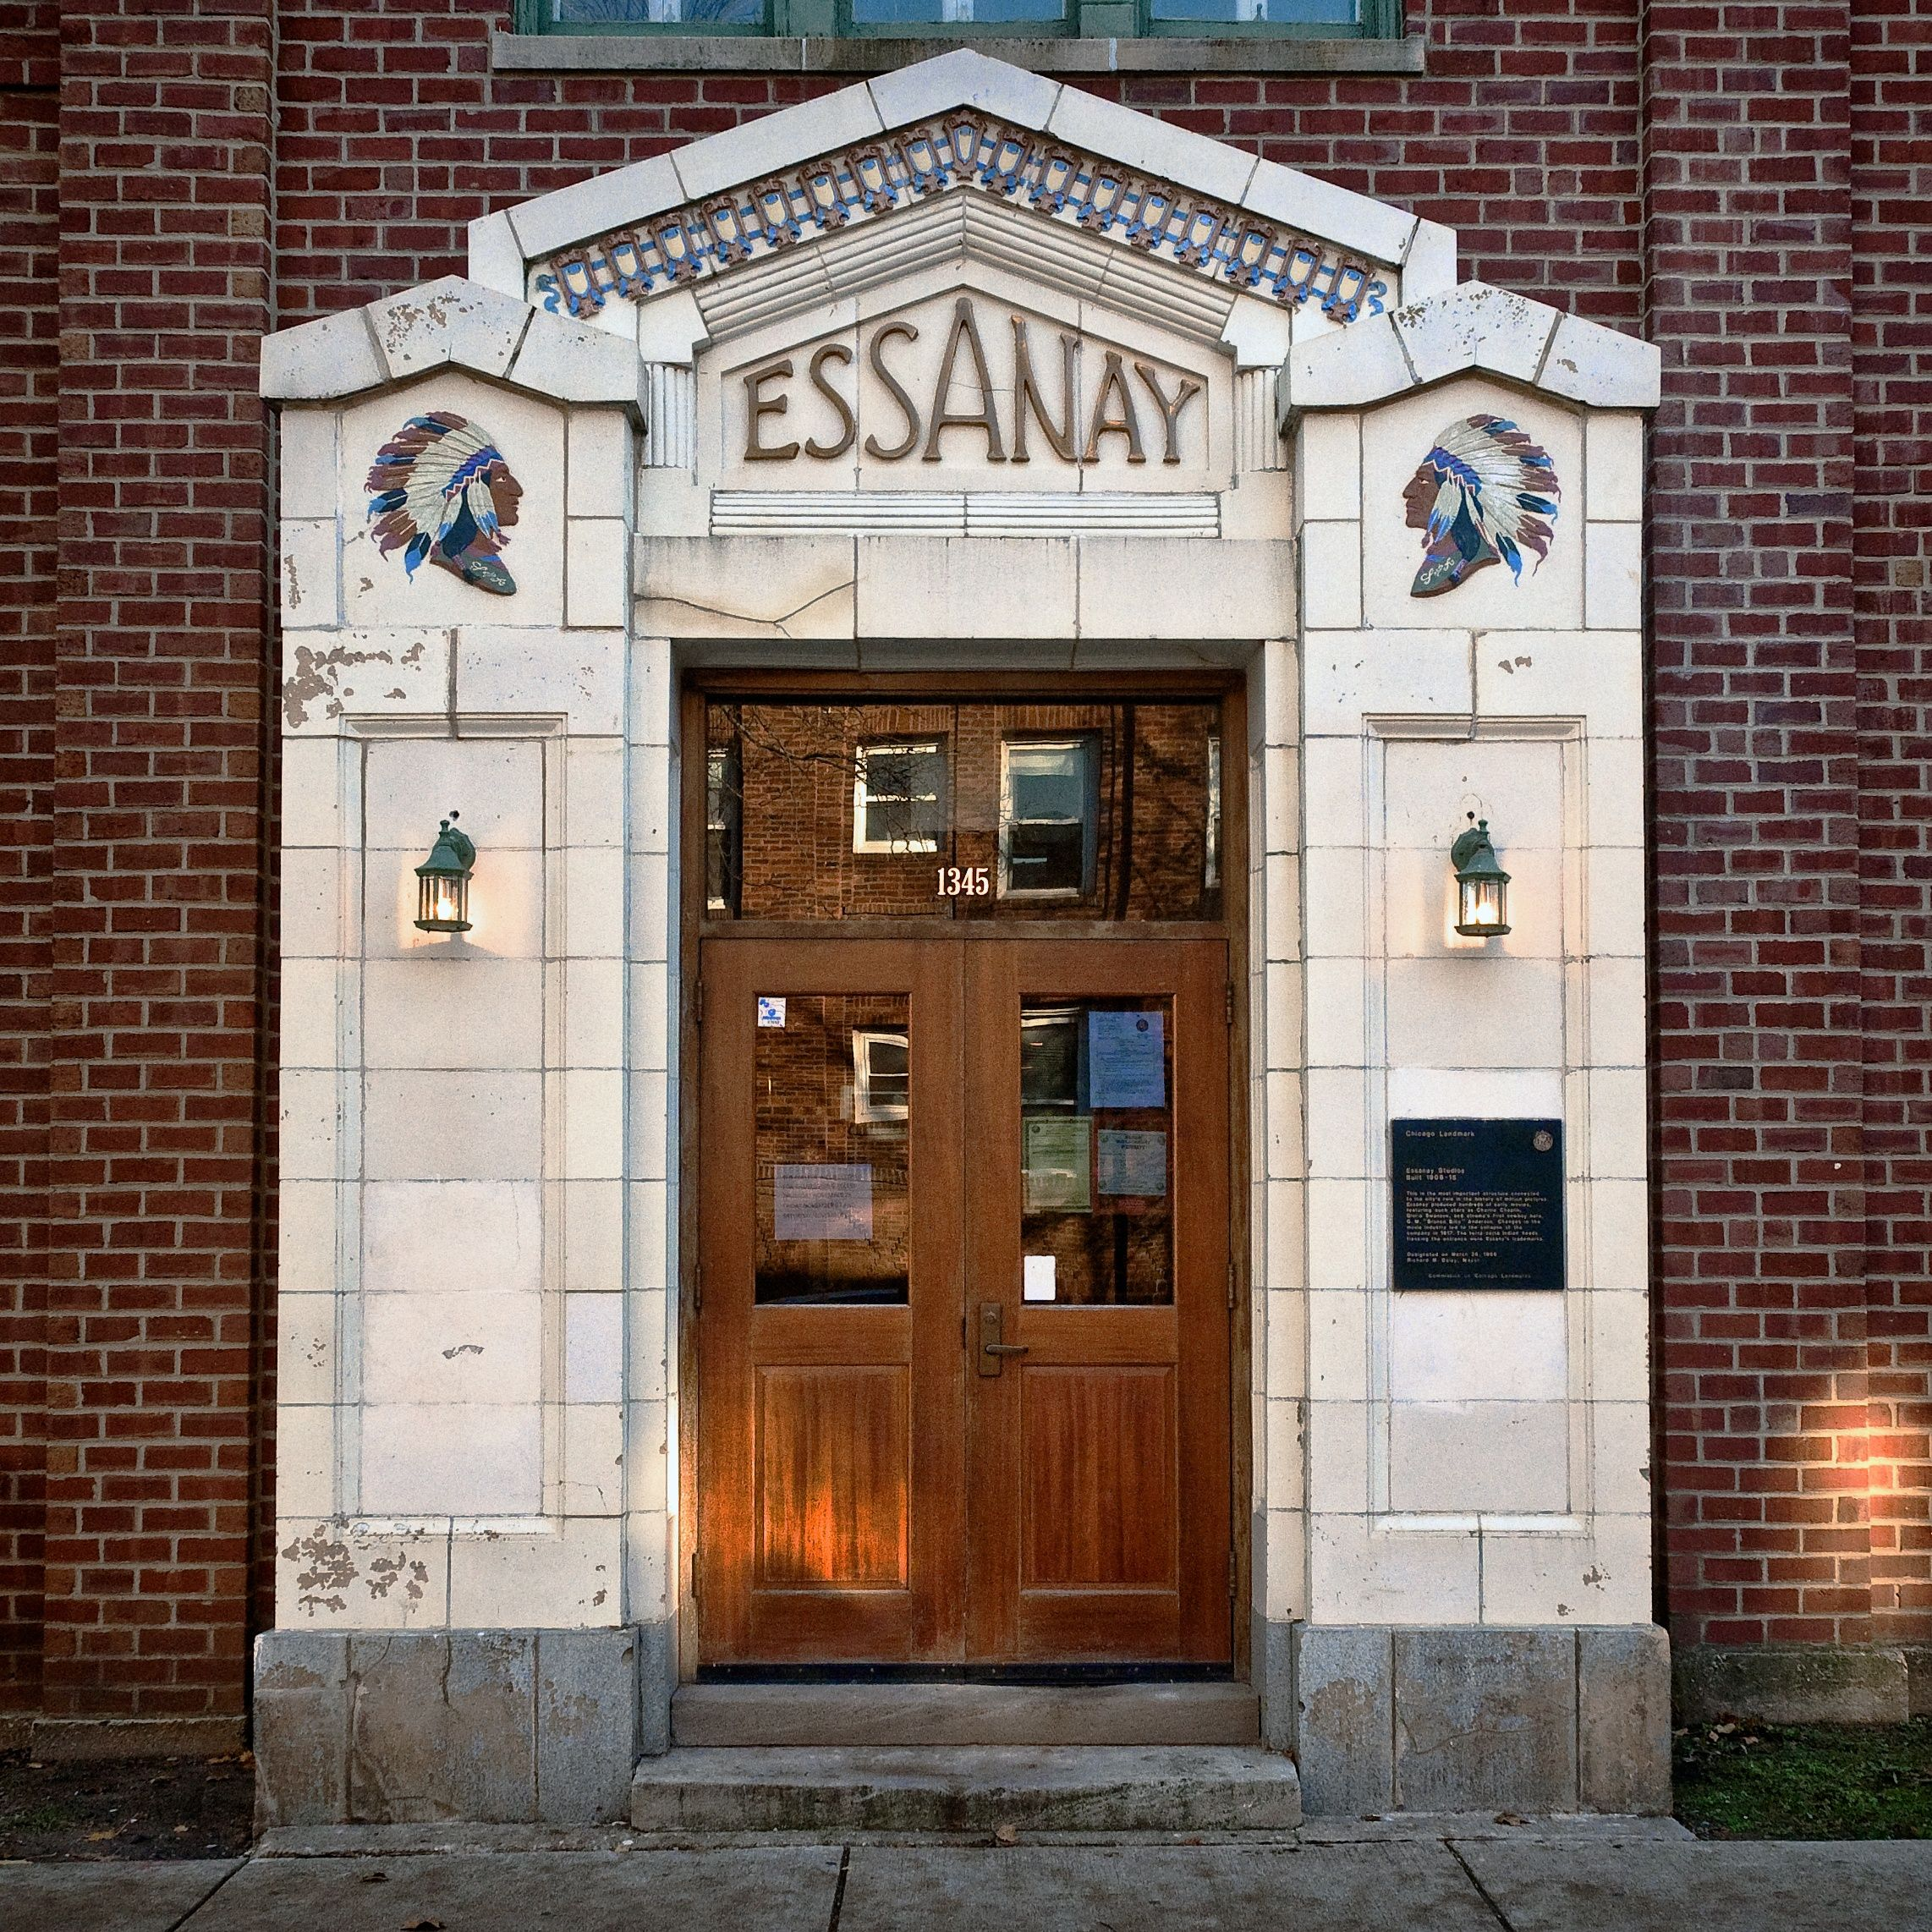 SIGHTS. Essanay Studios. Back before the talkies made silent film obsolete, Chicago reigned supreme as the number one producer of movie magic in the USA. Essanay churned out silent films with soon-to-be household names like WC Fields, Charlie Chaplin and Gilbert M Anderson (